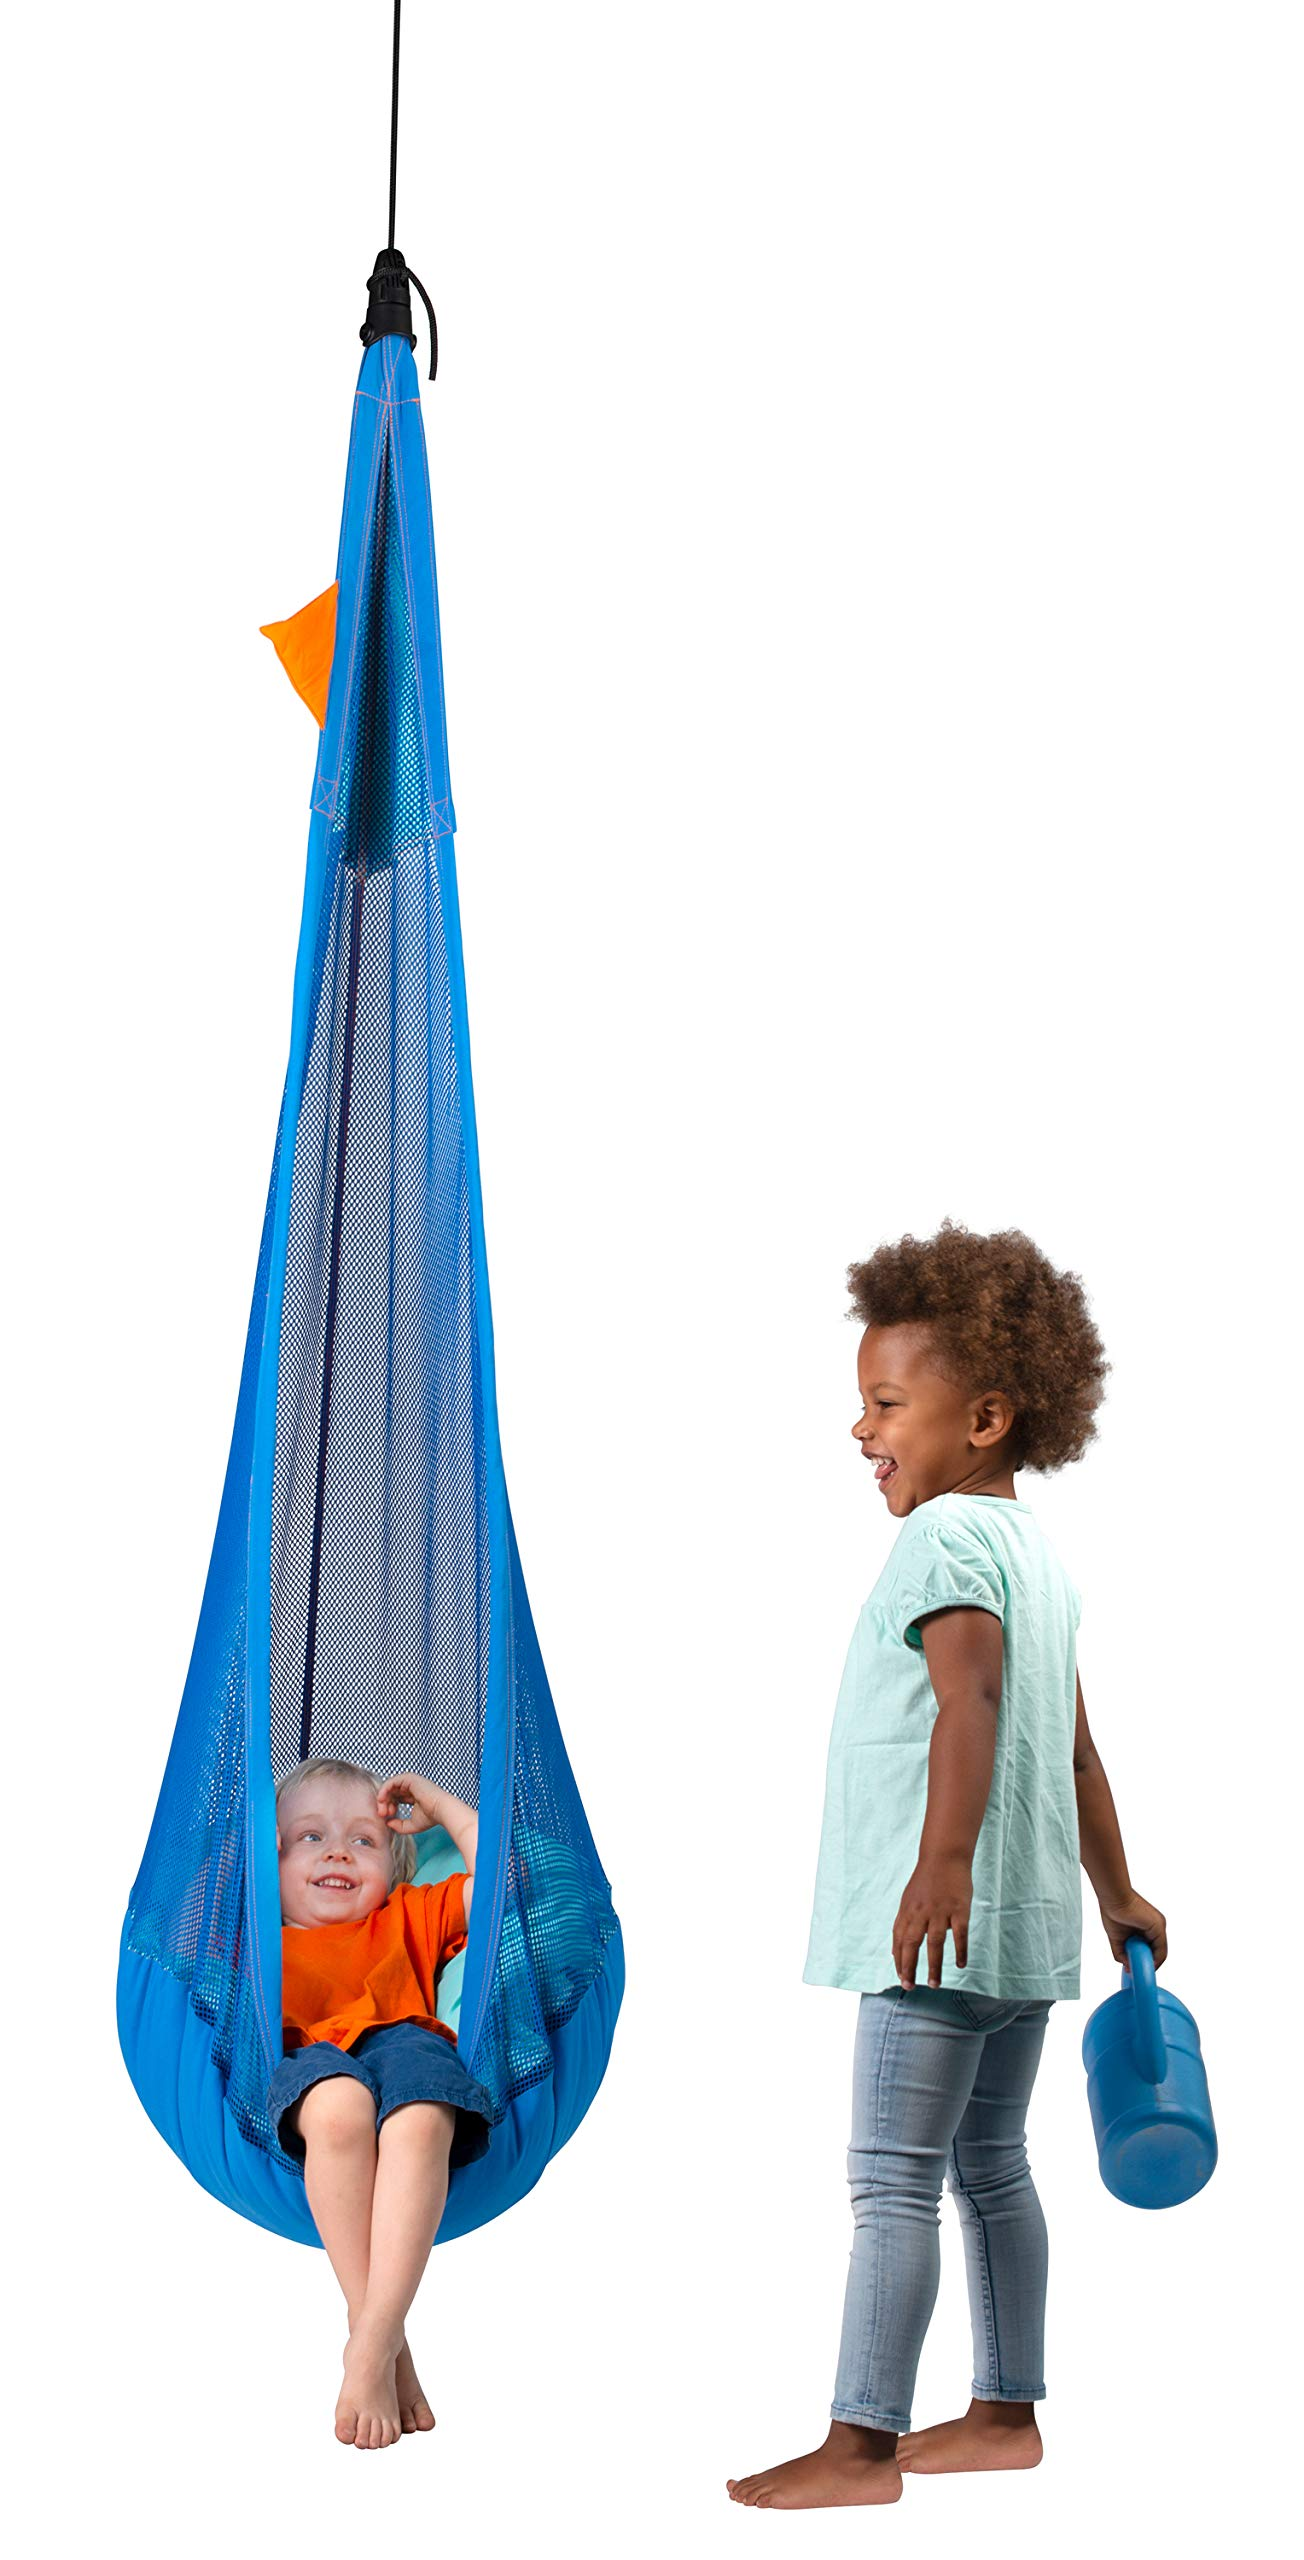 LA SIESTA - Joki Air Moby - Max Organic Cotton Kids Hanging Nest Bean Bag with Integrated Suspension La Siesta The new generation of our hanging nests for children not only has a modern design, but also sets new standards in terms of safety. The smart fixingset is already included in the purchase price The extra padded selvedges reduce wear and are pleasantly soft / Hanging Nest for children from 3-10 years The safety swivel prevents the hanging nest from being twisted in and thus not only guarantees great safety, but also durability. The SmartSwivel makes it easy to remove the new Joki and adjust its height in one simple step 3